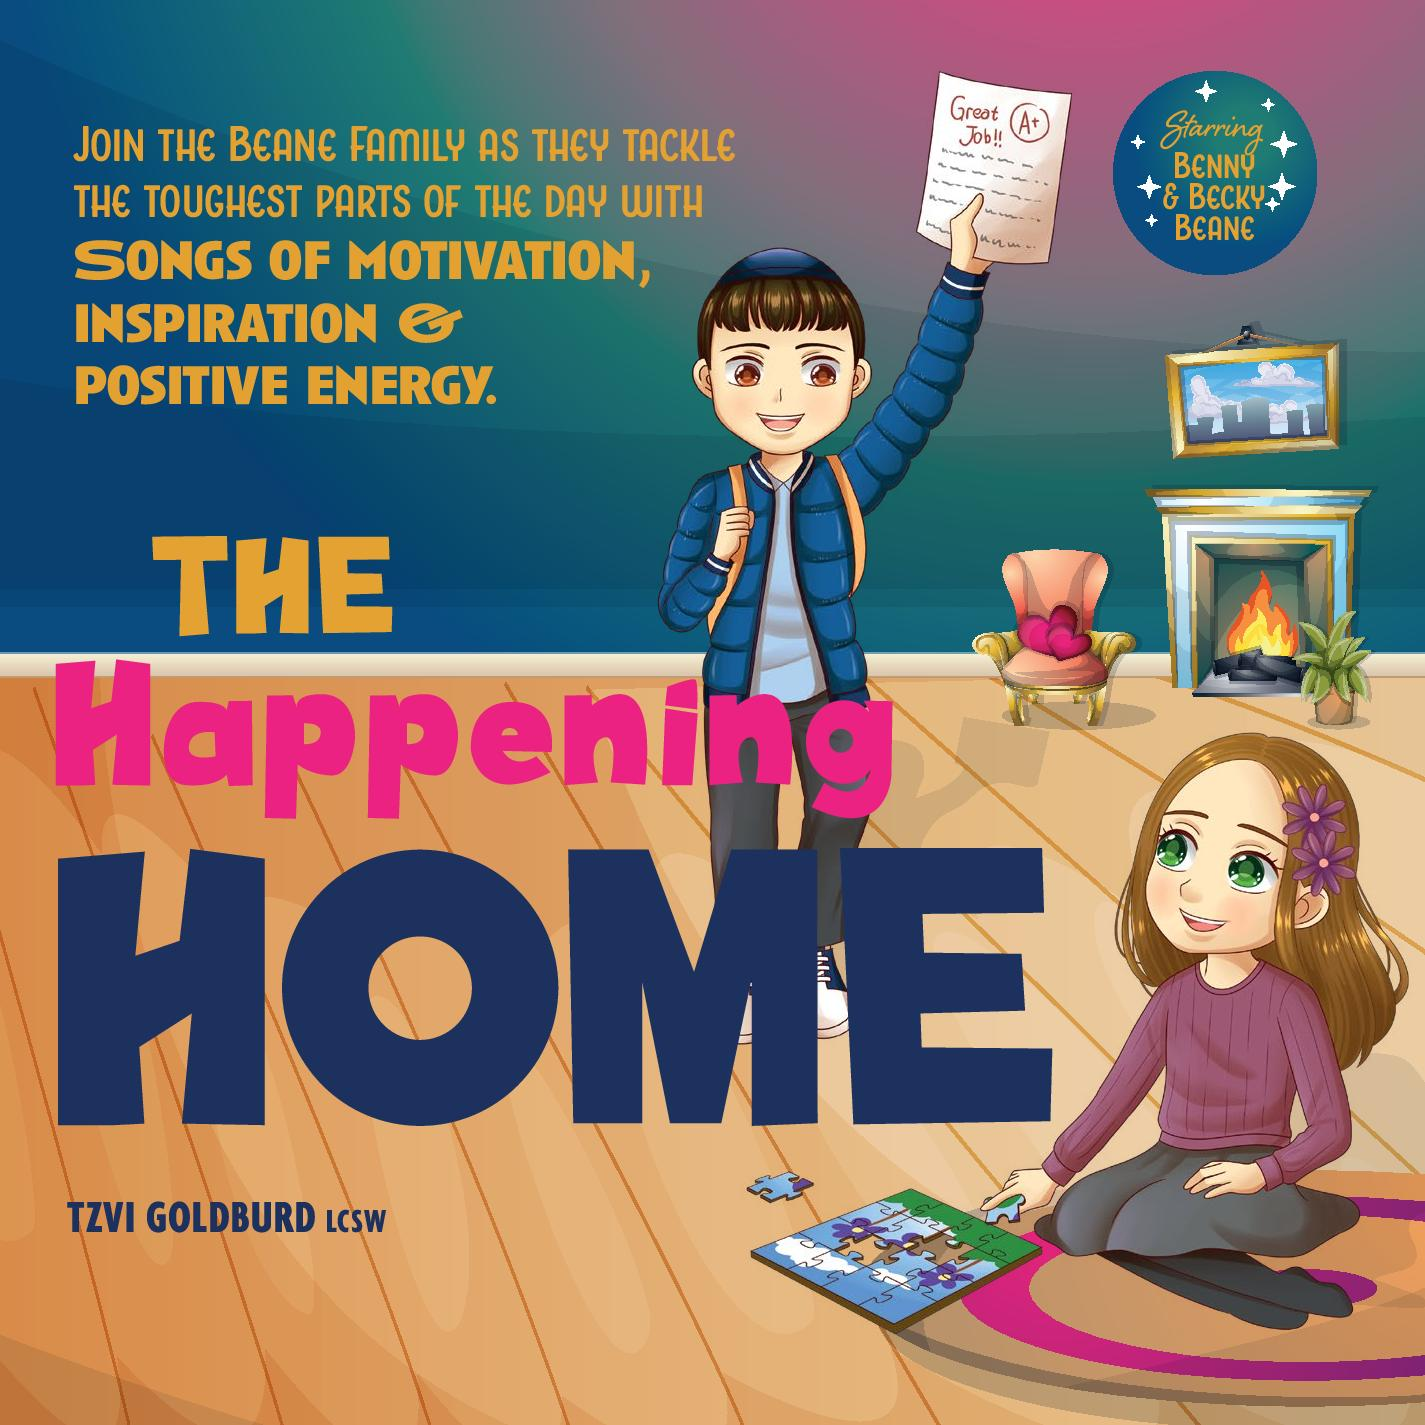 Tzvi Goldburd (LCSW) - The Happening Home